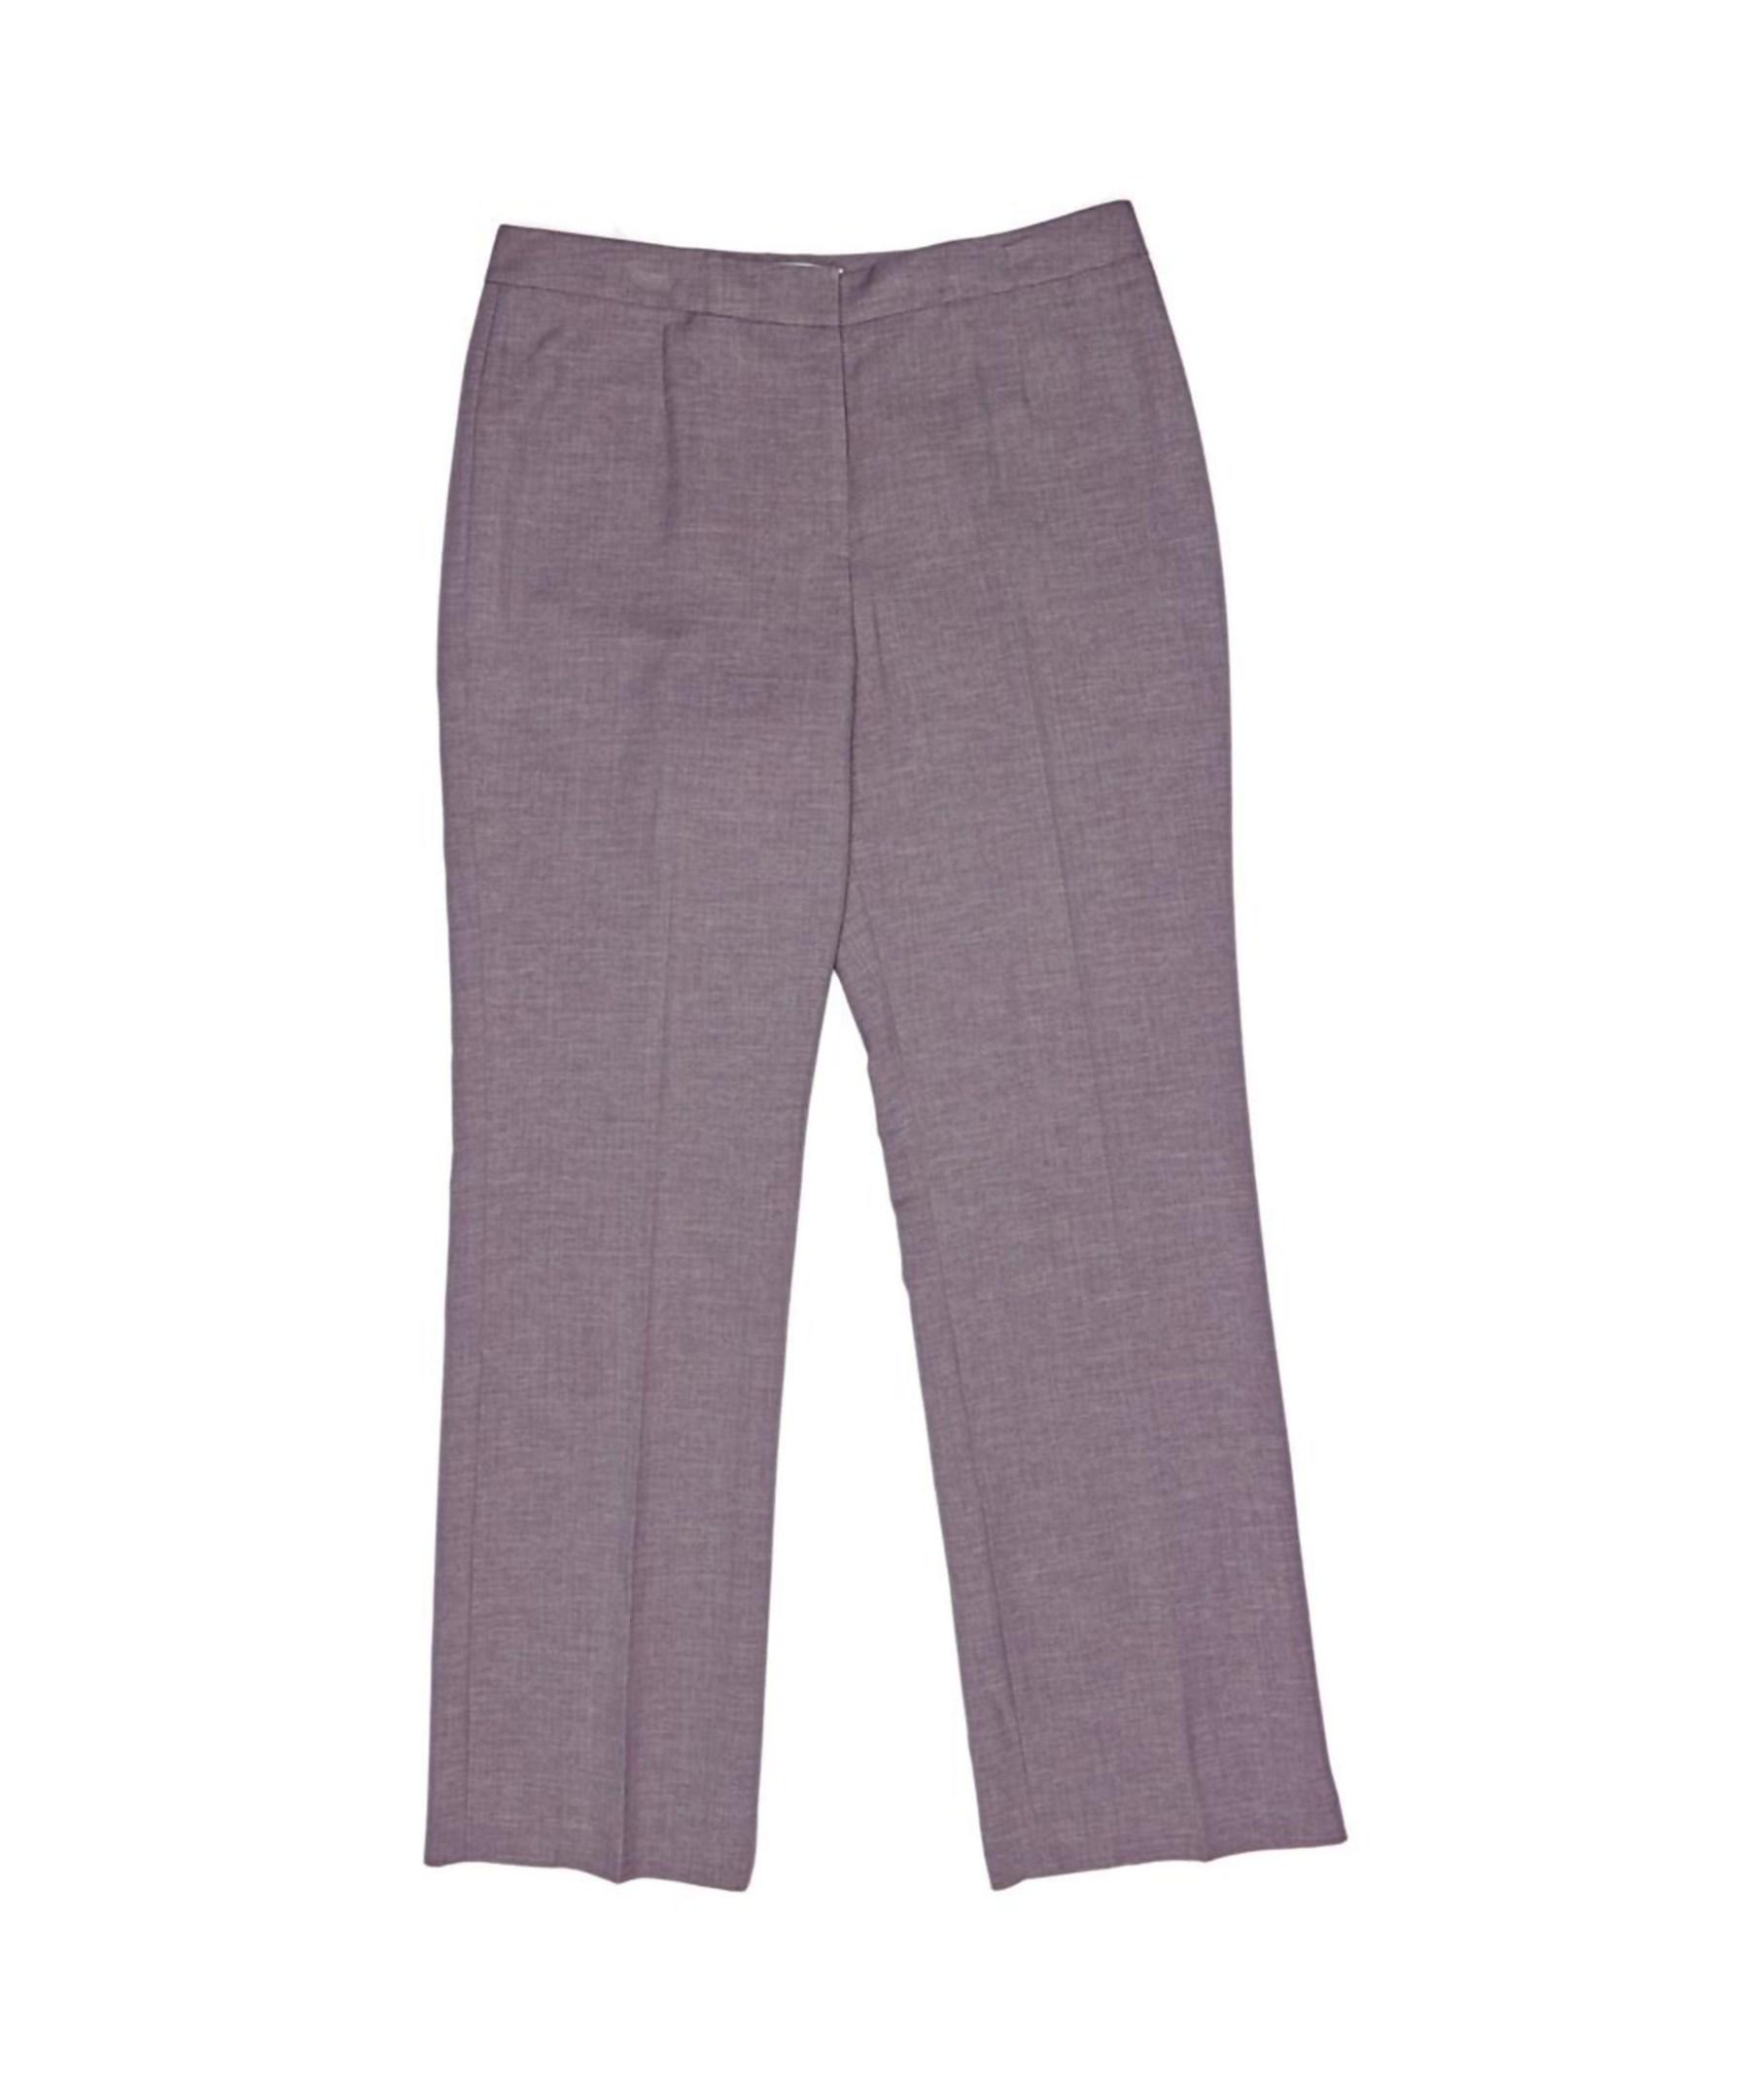 Model Reiss Nell Arc Tailored Trousers In Gray  Lyst